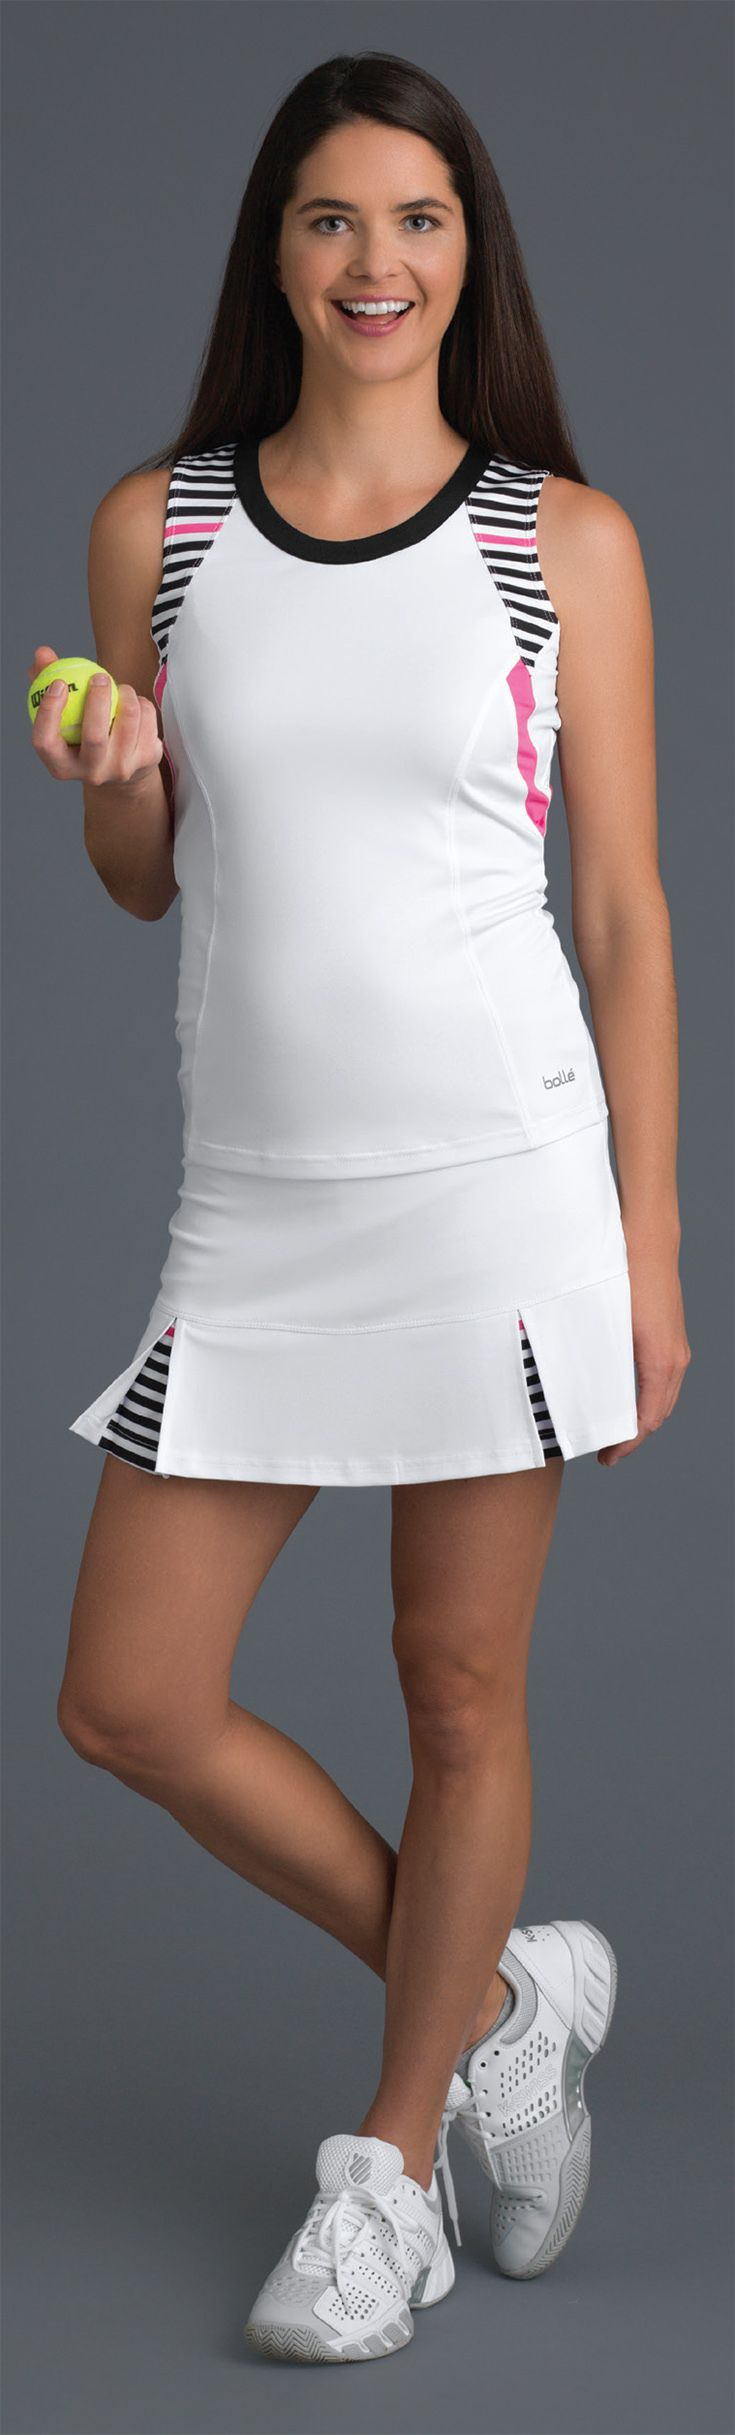 Check out Bolle's Verona women's tennis collection for spring 2018. This premier collection of women's tennis apparel includes tennis skirts, tops, and tanks in hibiscus pink, black, white and verona print fabric for the ideal update to your look for the season. Shop more Bolle tennis and activewear apparel at MidwestSports.com.